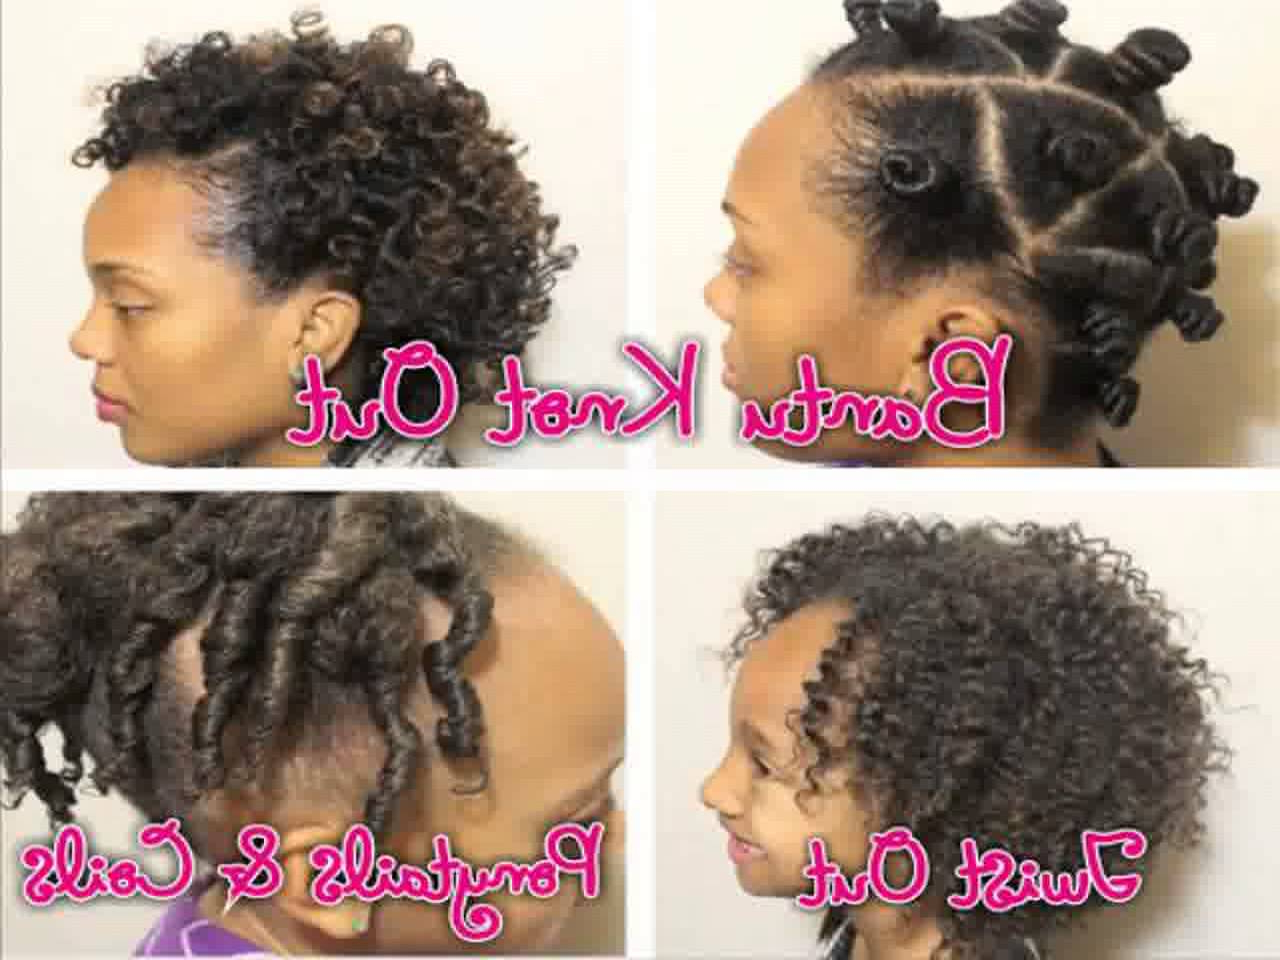 The Story Of Black Infant Hairstyles Has Just Gone Viral! | Black With Regard To Black Little Girl Short Hairstyles (View 7 of 25)